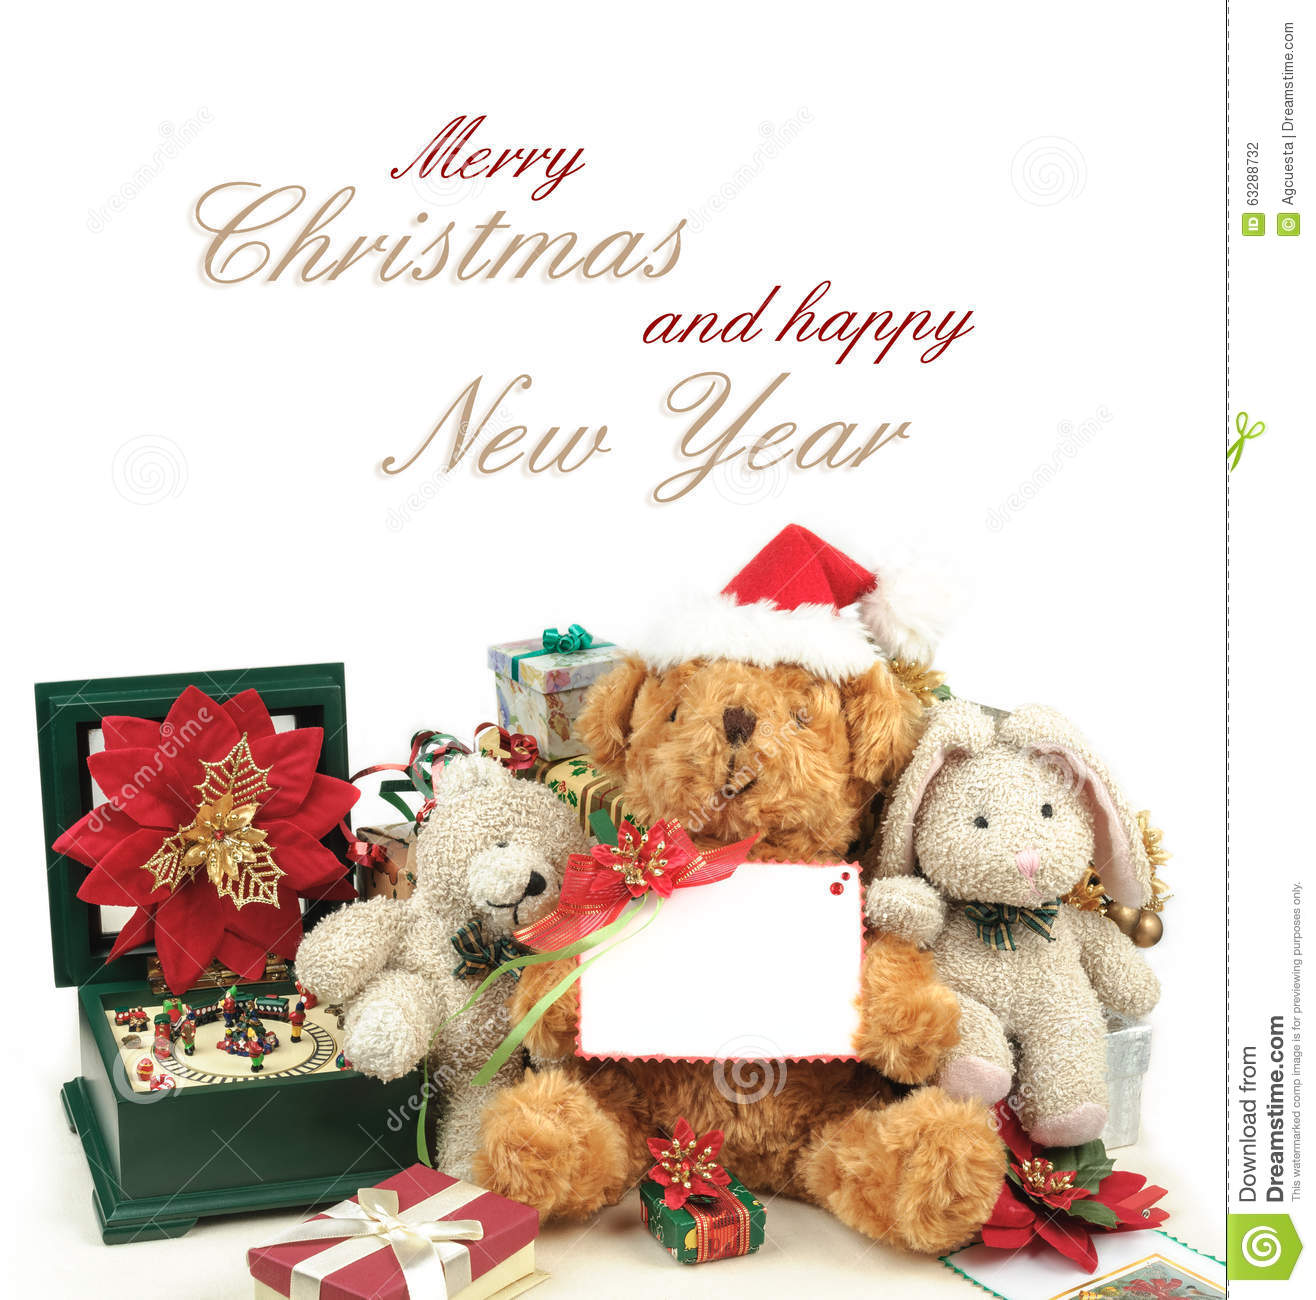 Christmas greeting card with teddy bear gifts friends stock photo download christmas greeting card with teddy bear gifts friends stock photo image of m4hsunfo